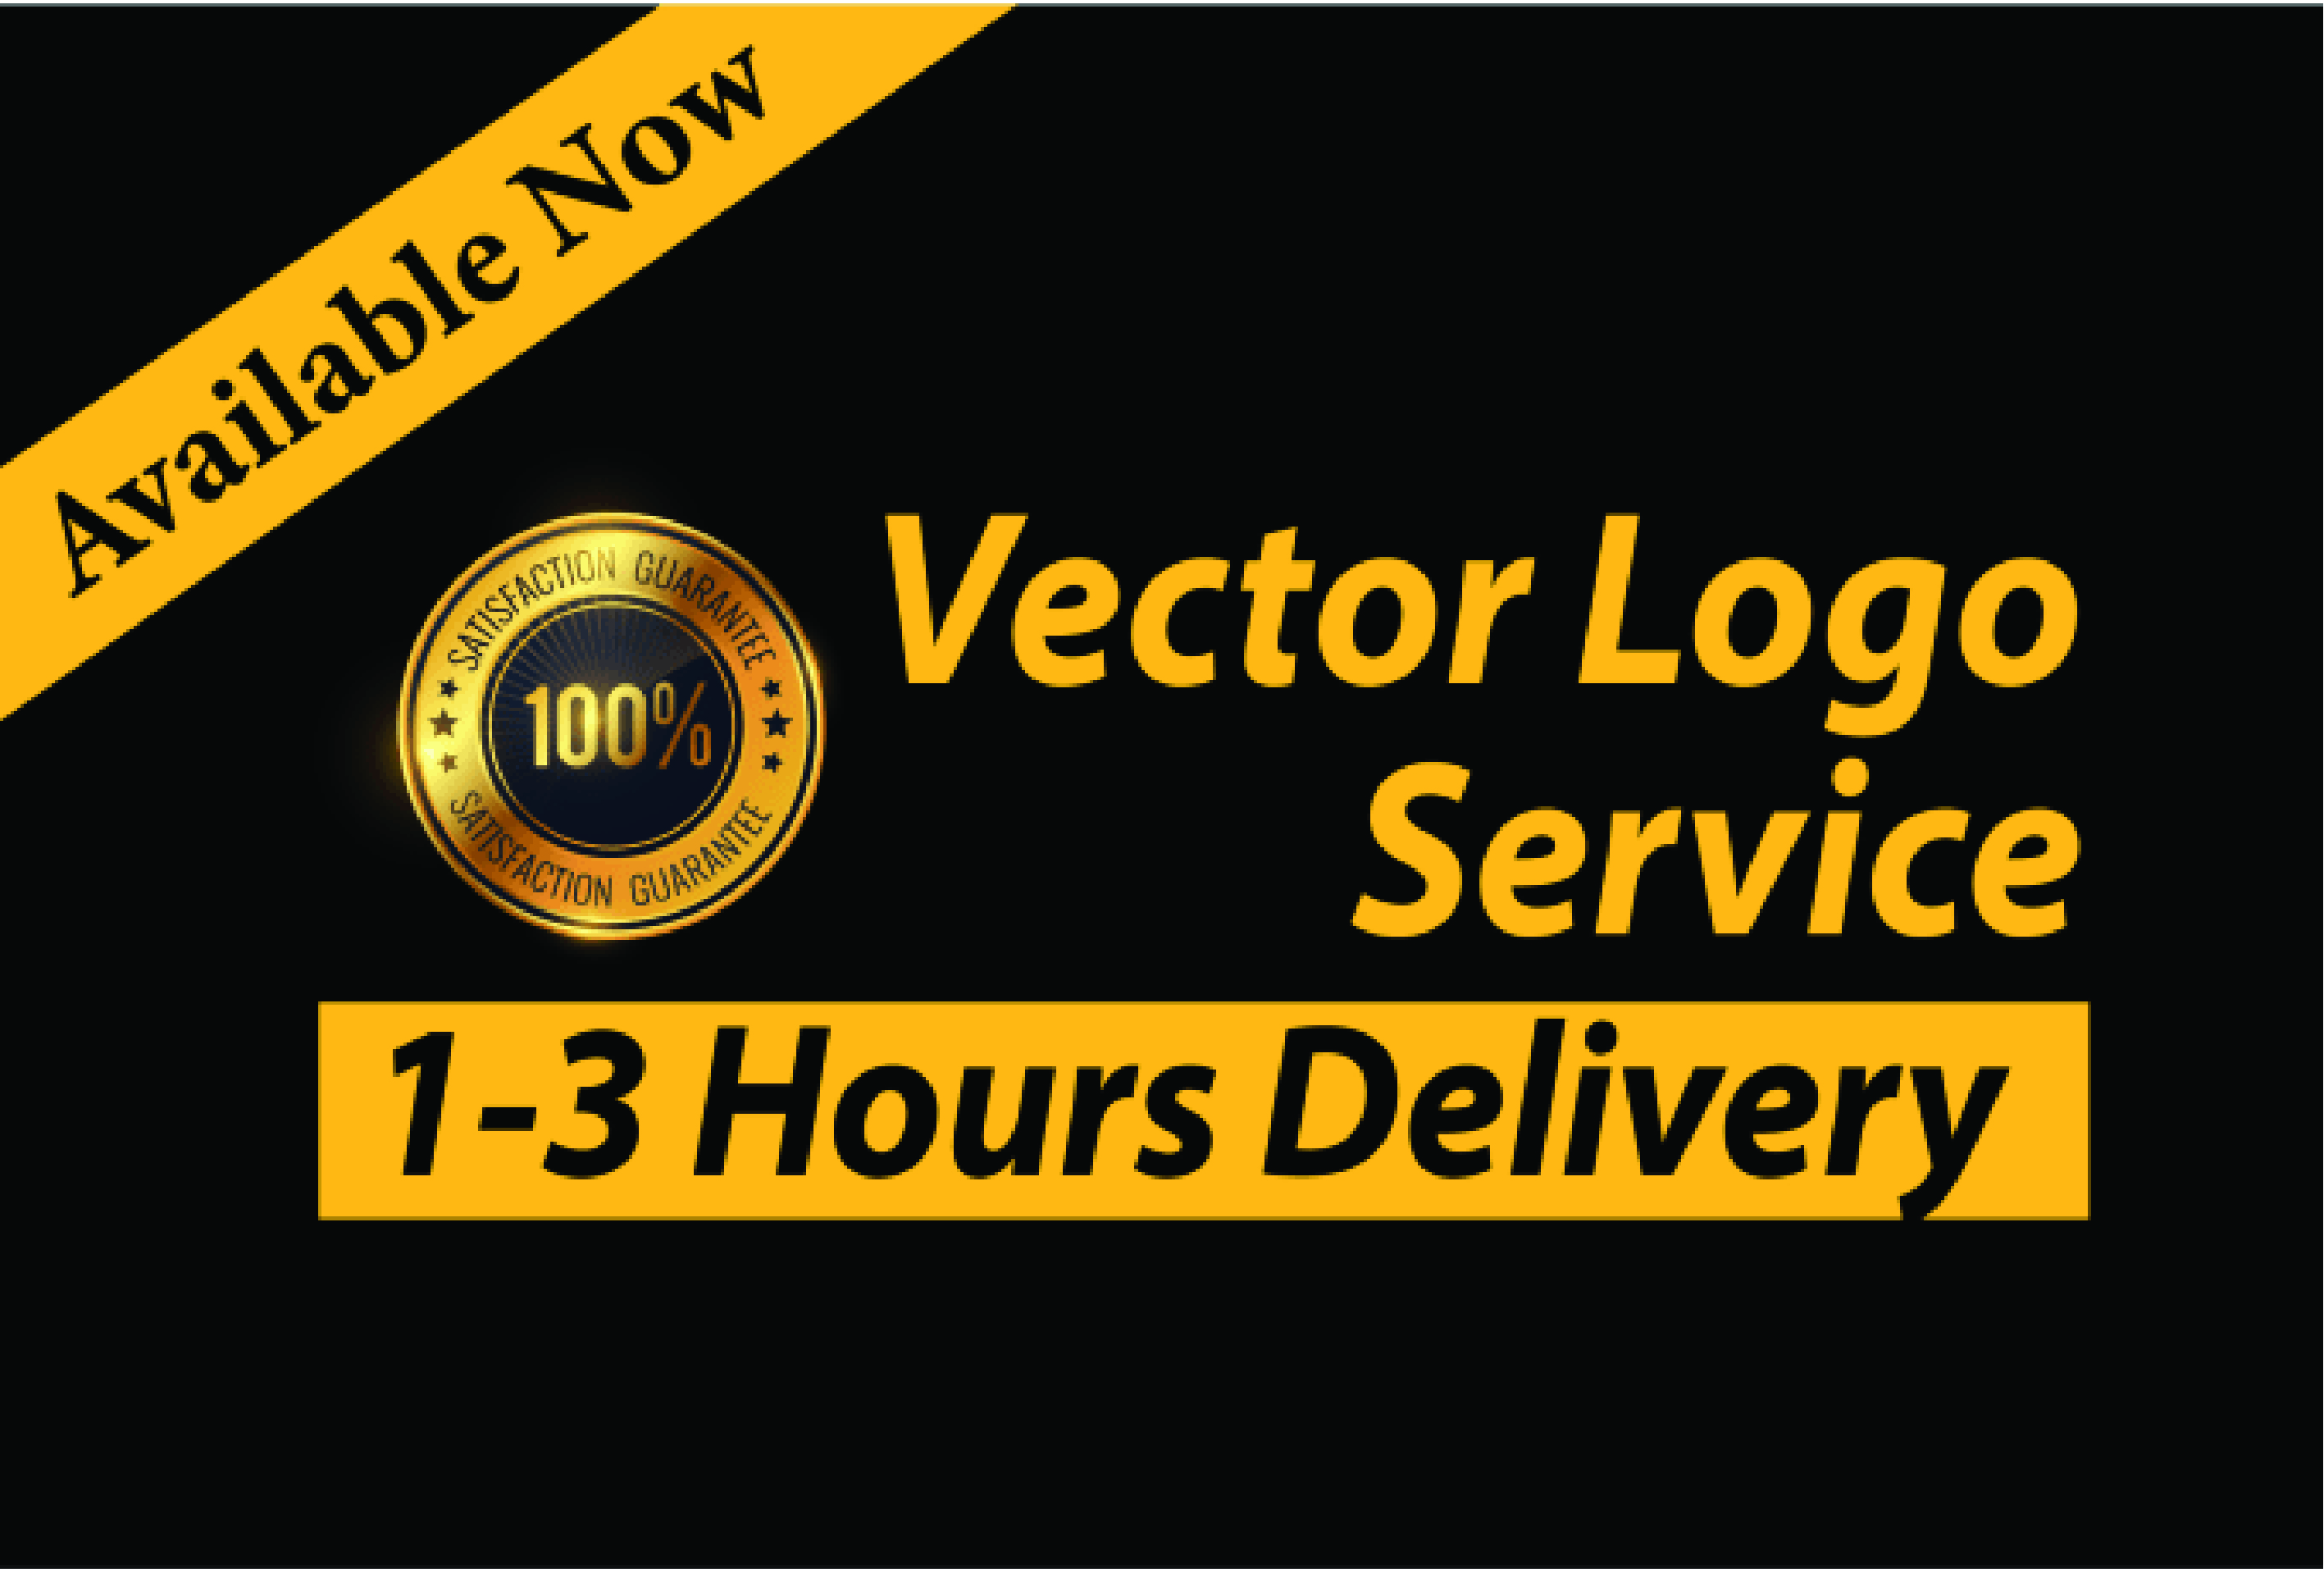 I will redraw or convert logo vector from low quality graphics